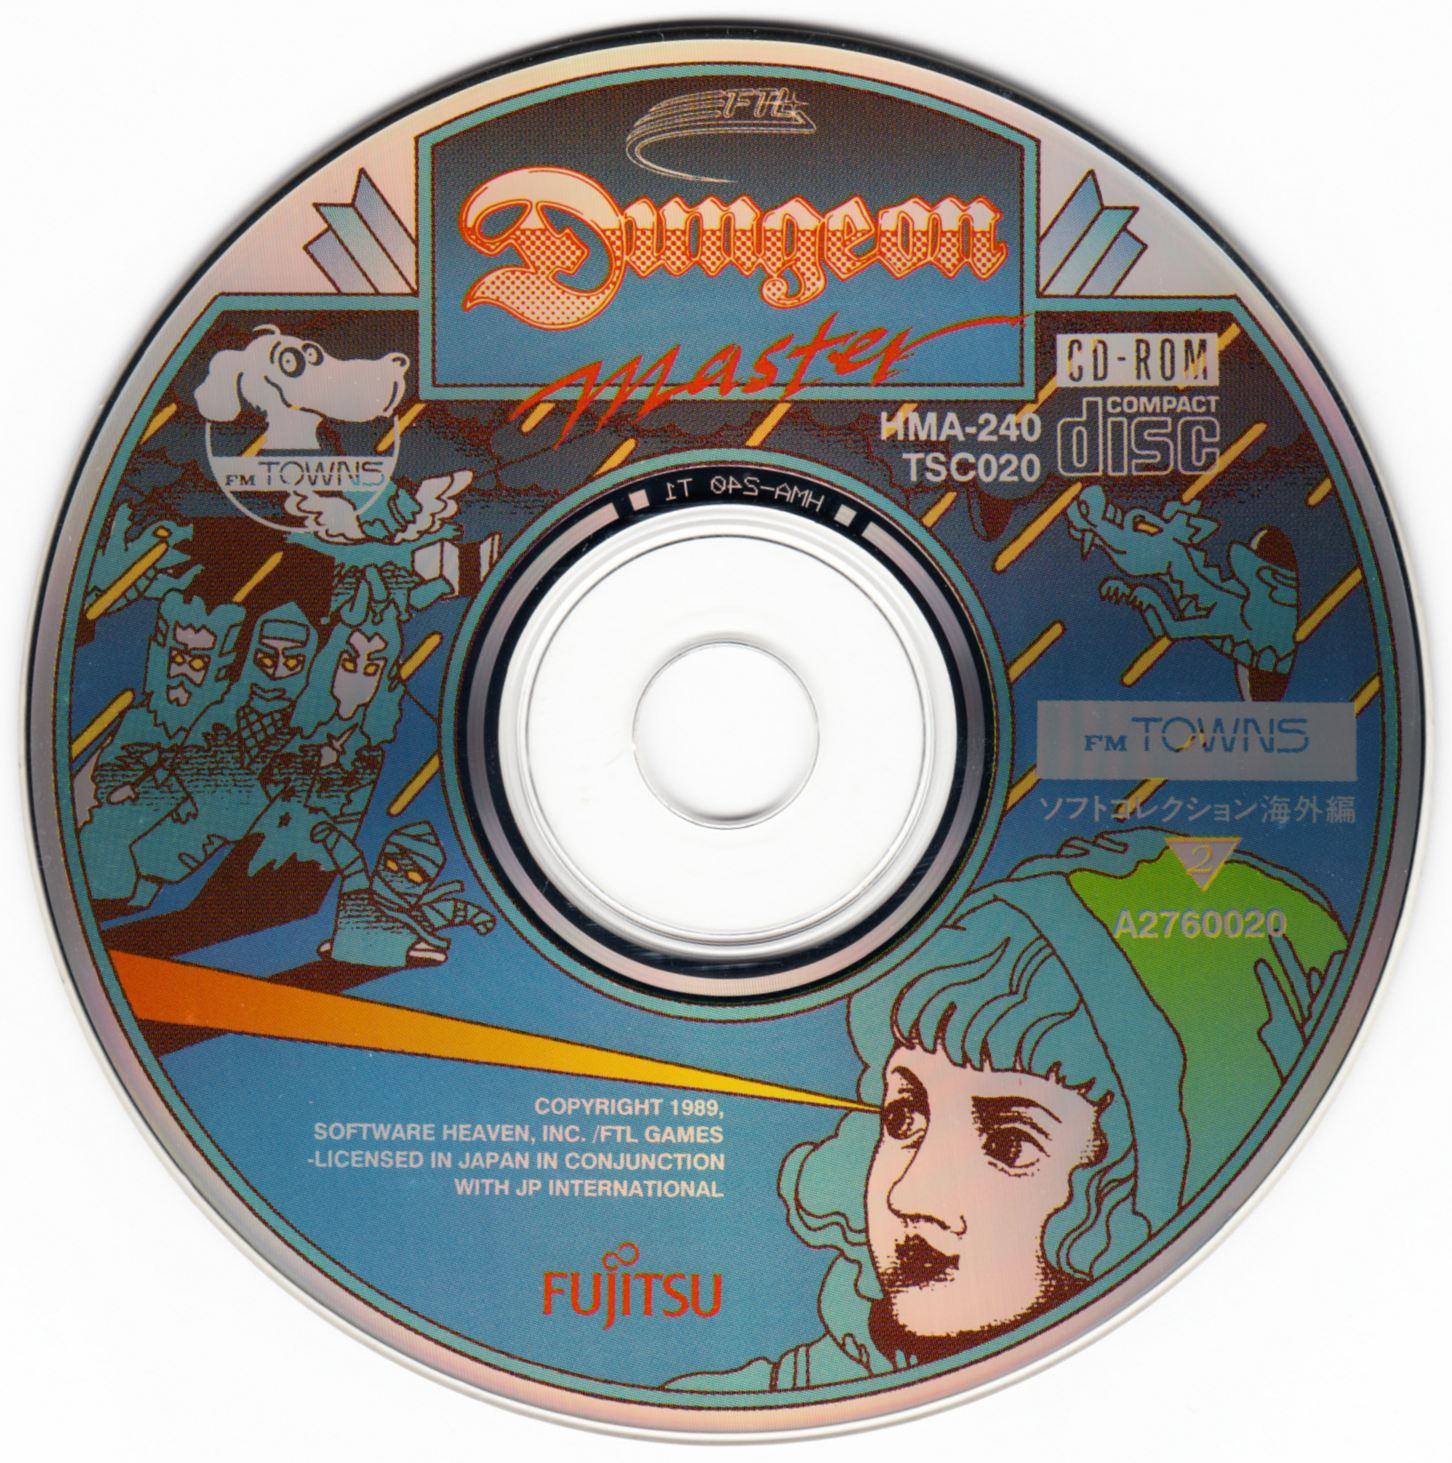 Game - Dungeon Master - JP - FM Towns - Compact Disc T1 - Front - Scan